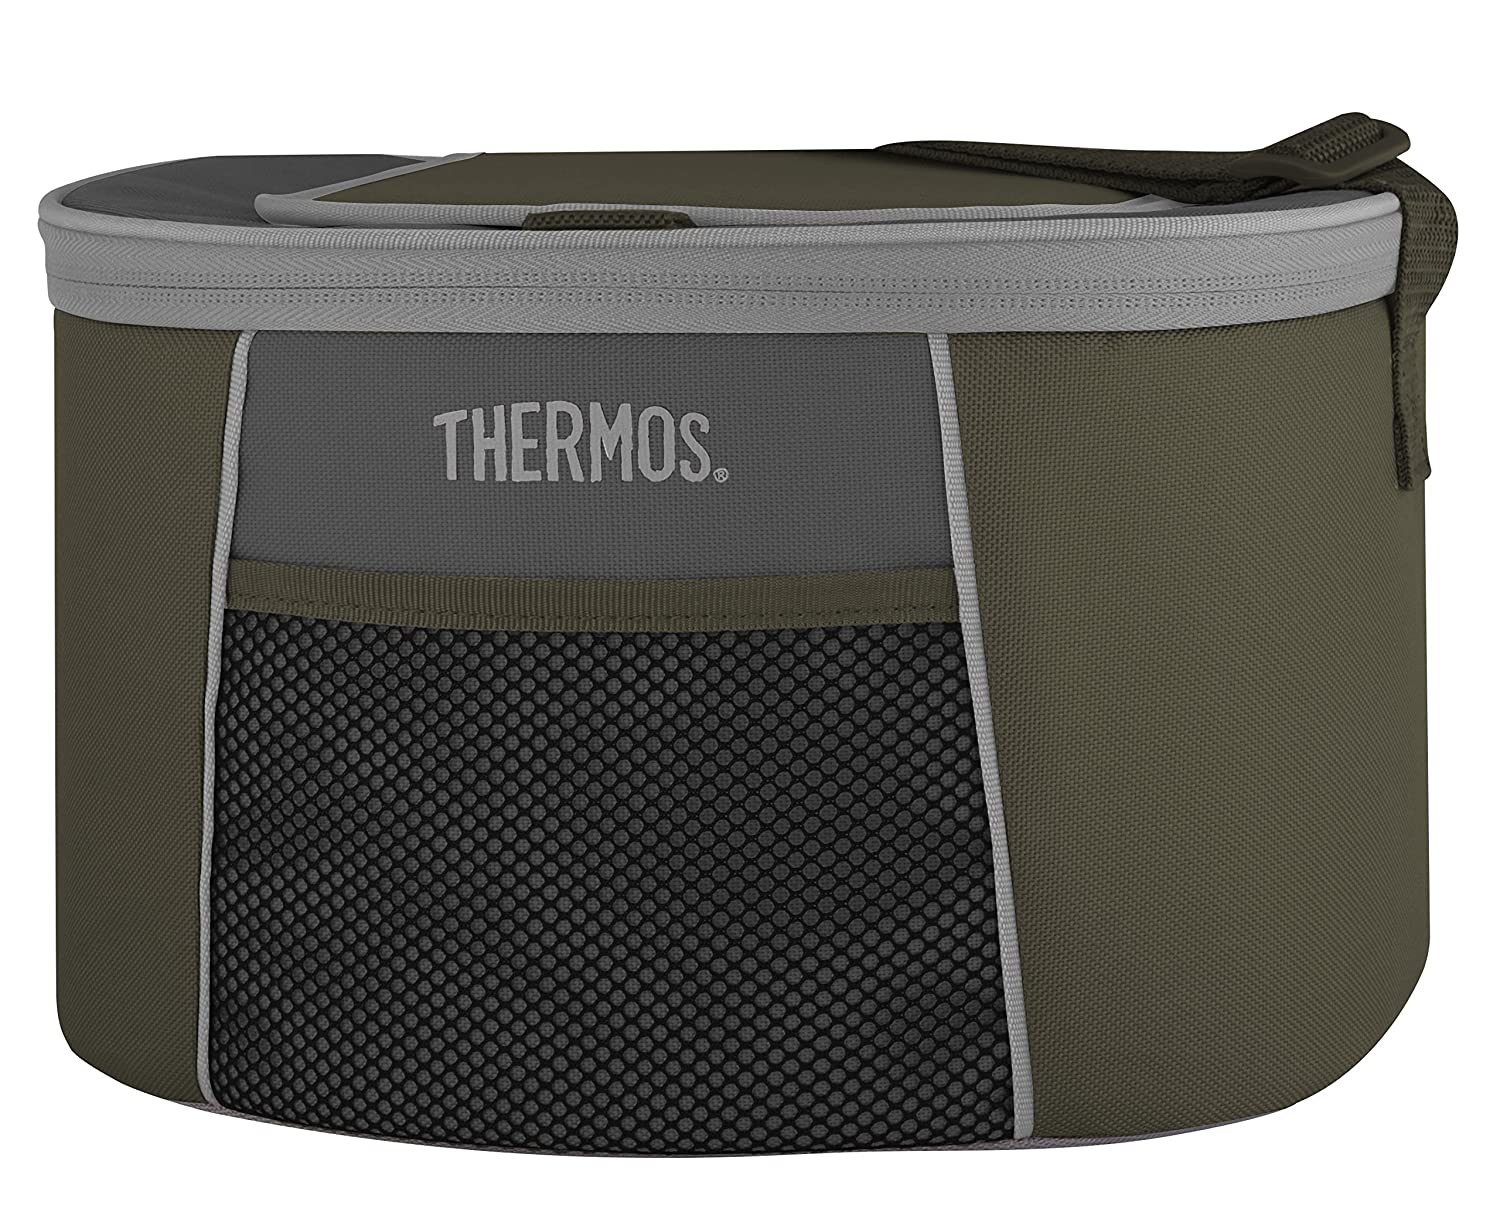 Thermos Element5 C63006006 6 Can Cooler, Black